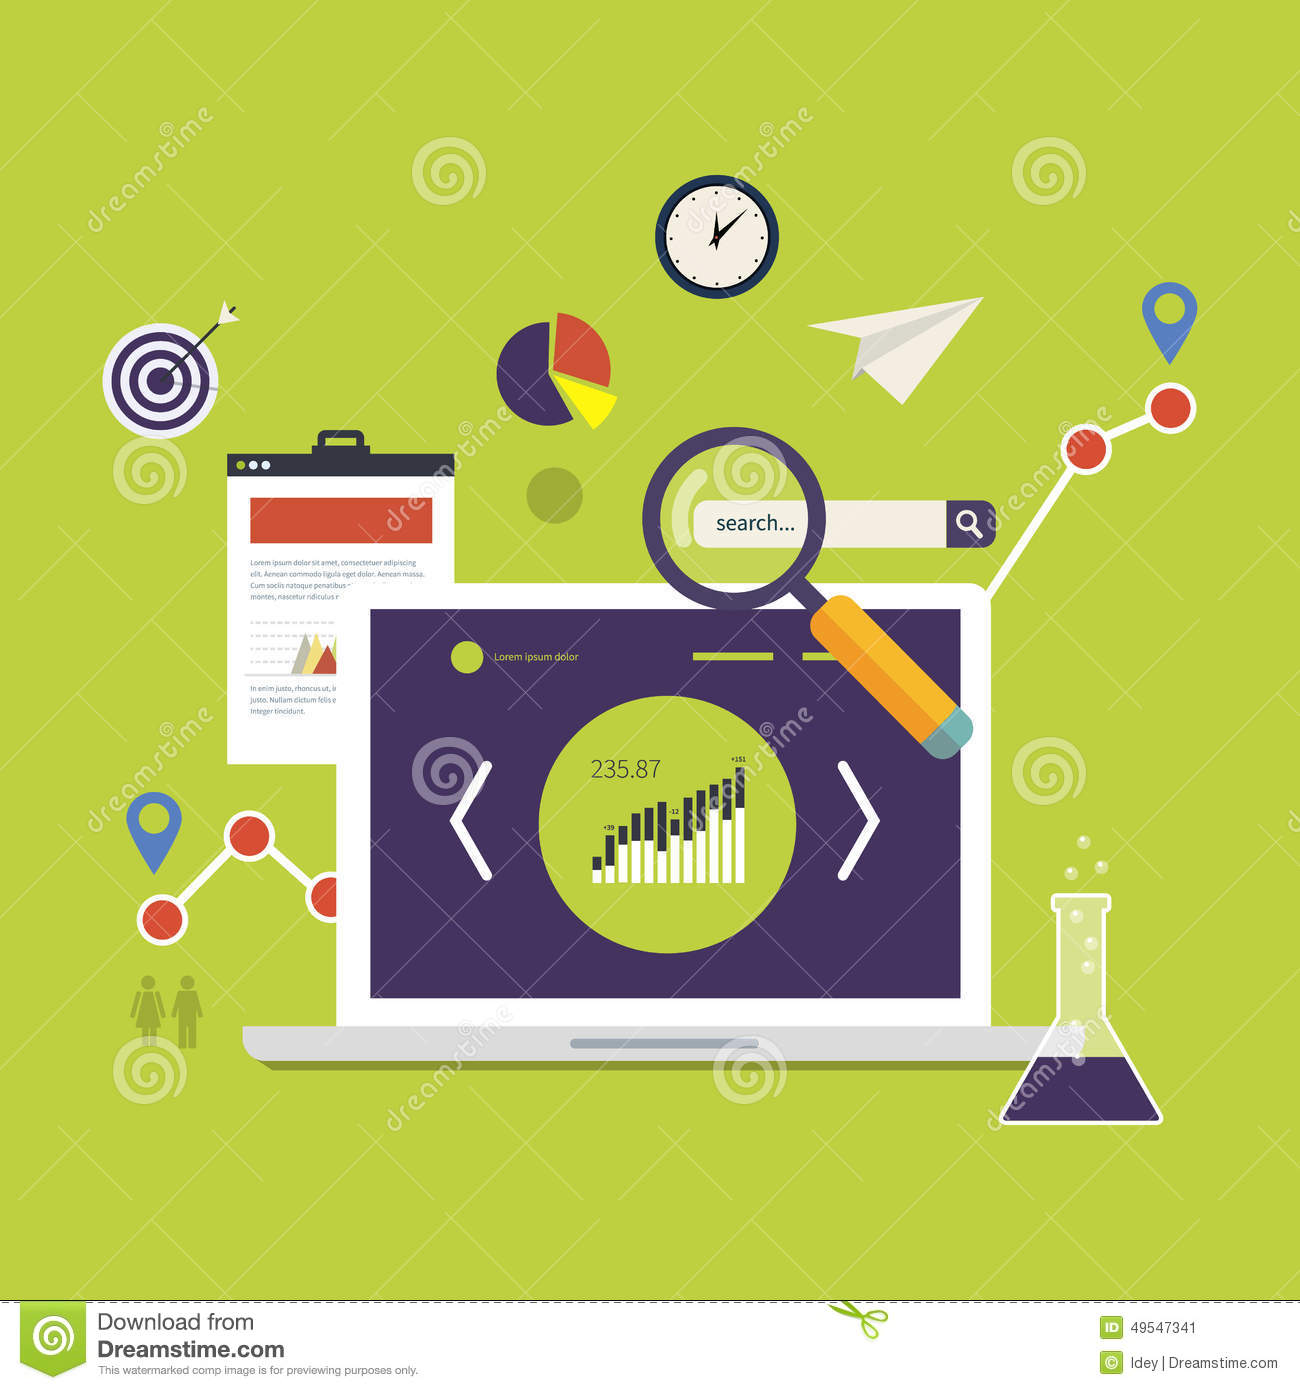 Jones Design Company Wallpaper : Market research icons stock vector image